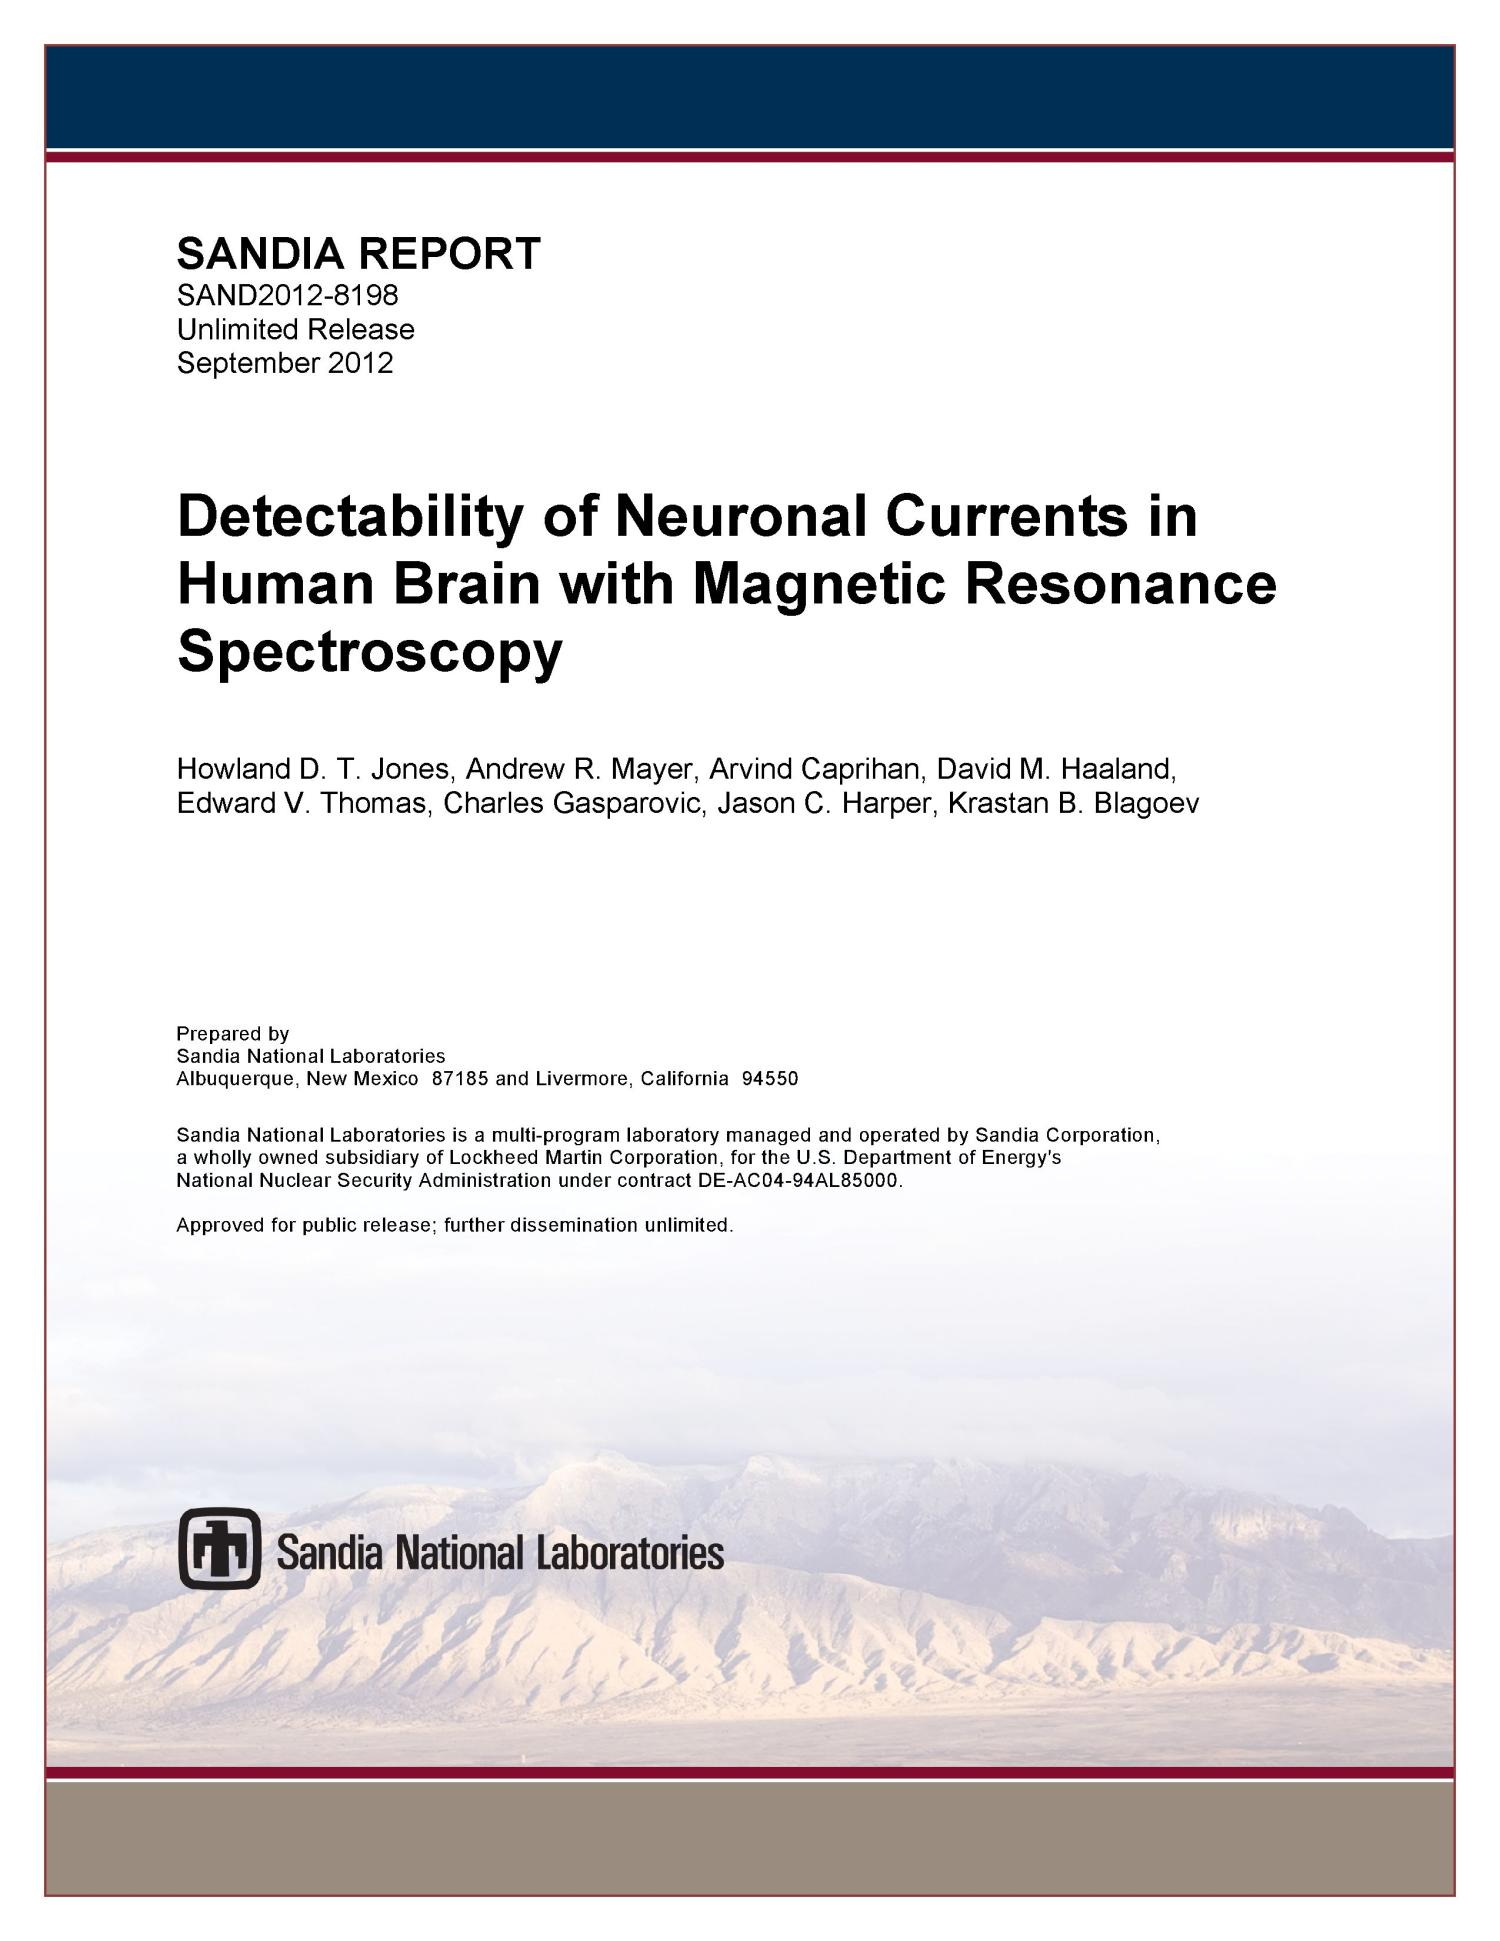 Detectability of Neuronal Currents in Human Brain with Magnetic Resonance Spectroscopy.                                                                                                      [Sequence #]: 1 of 51